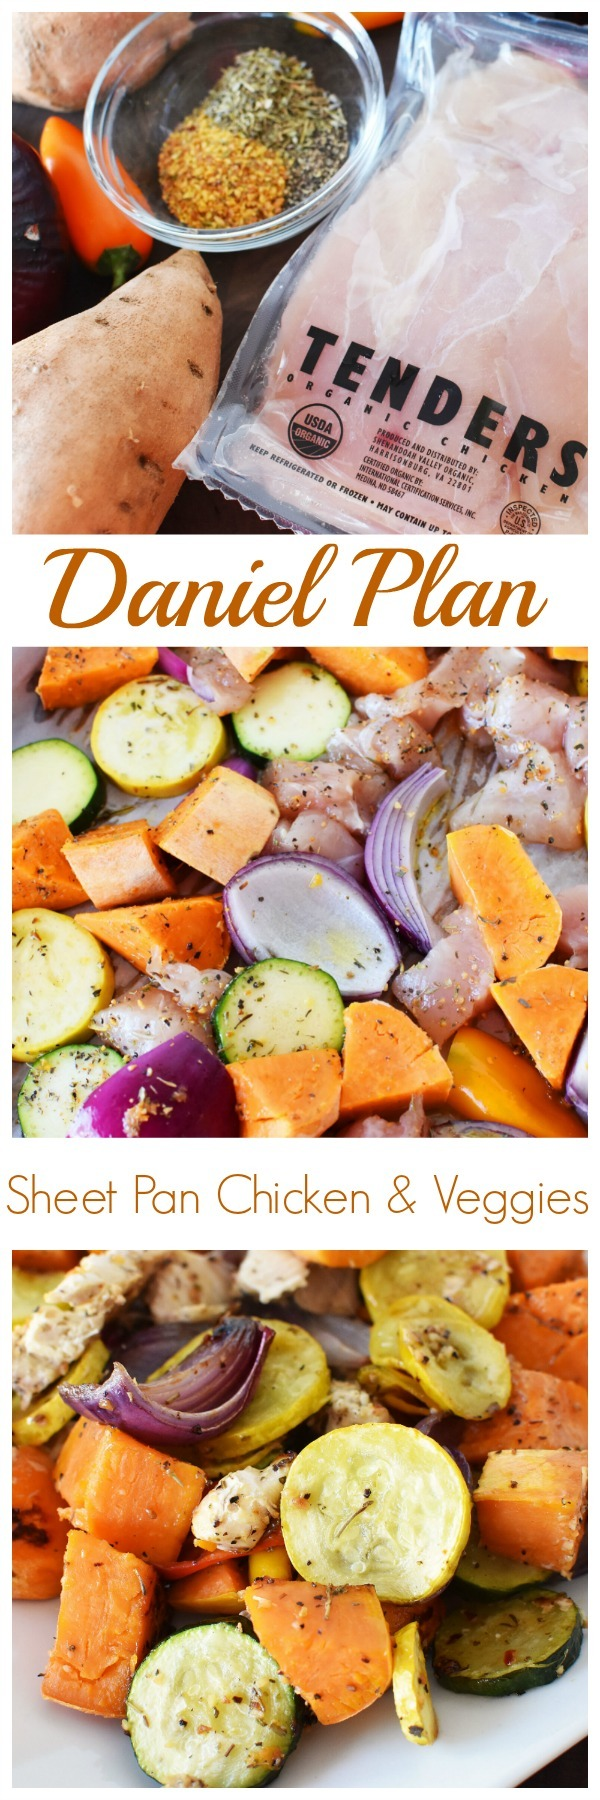 Daniel Plan Sheet Pan Chicken & Vegetables